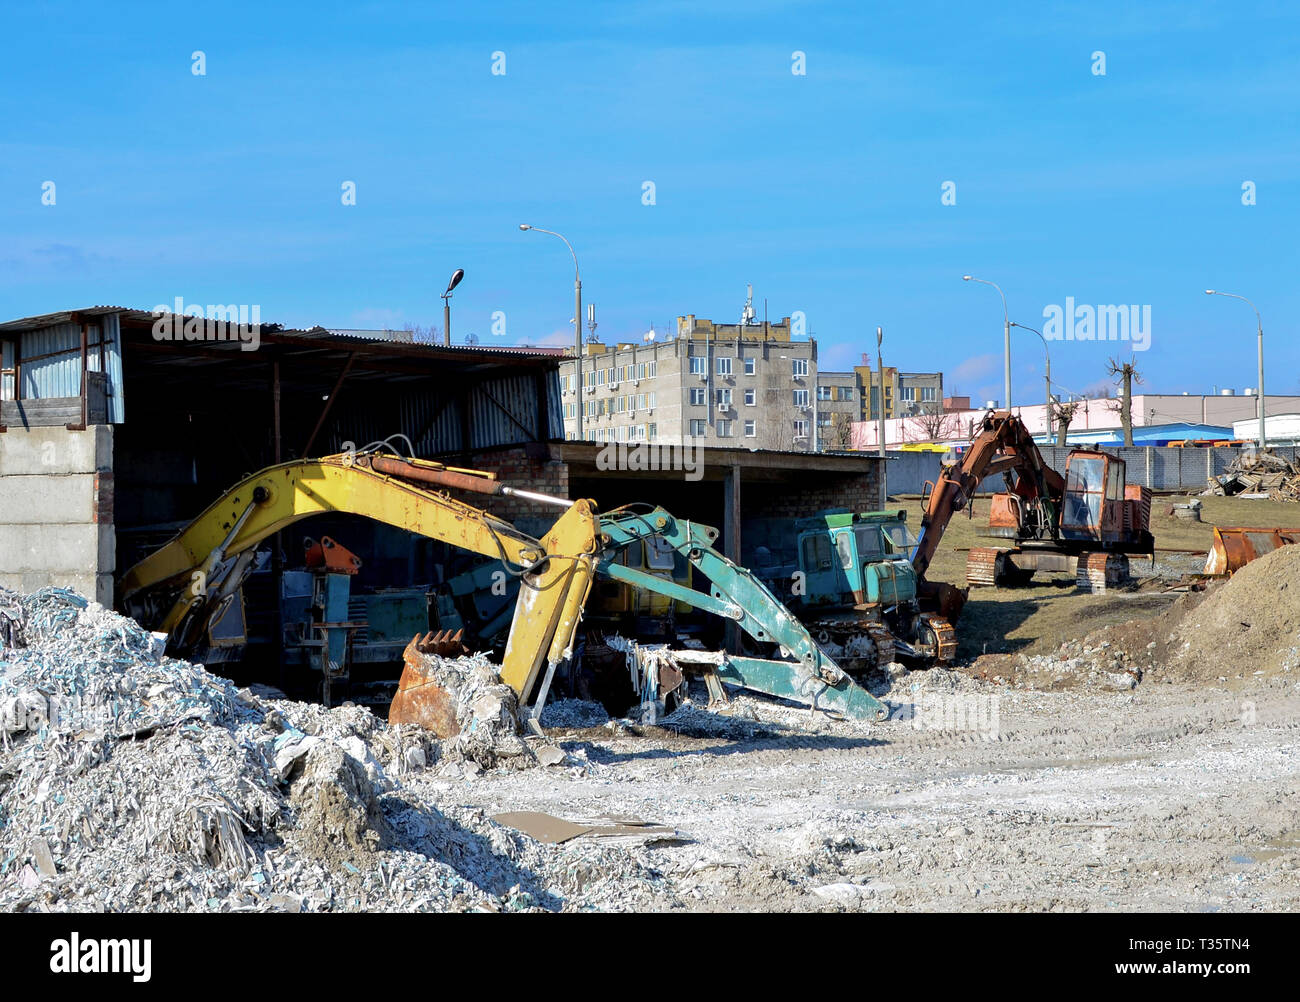 Old rusty abandoned construction excavators with a bucket on the ground in a hangar at a construction site - Stock Image